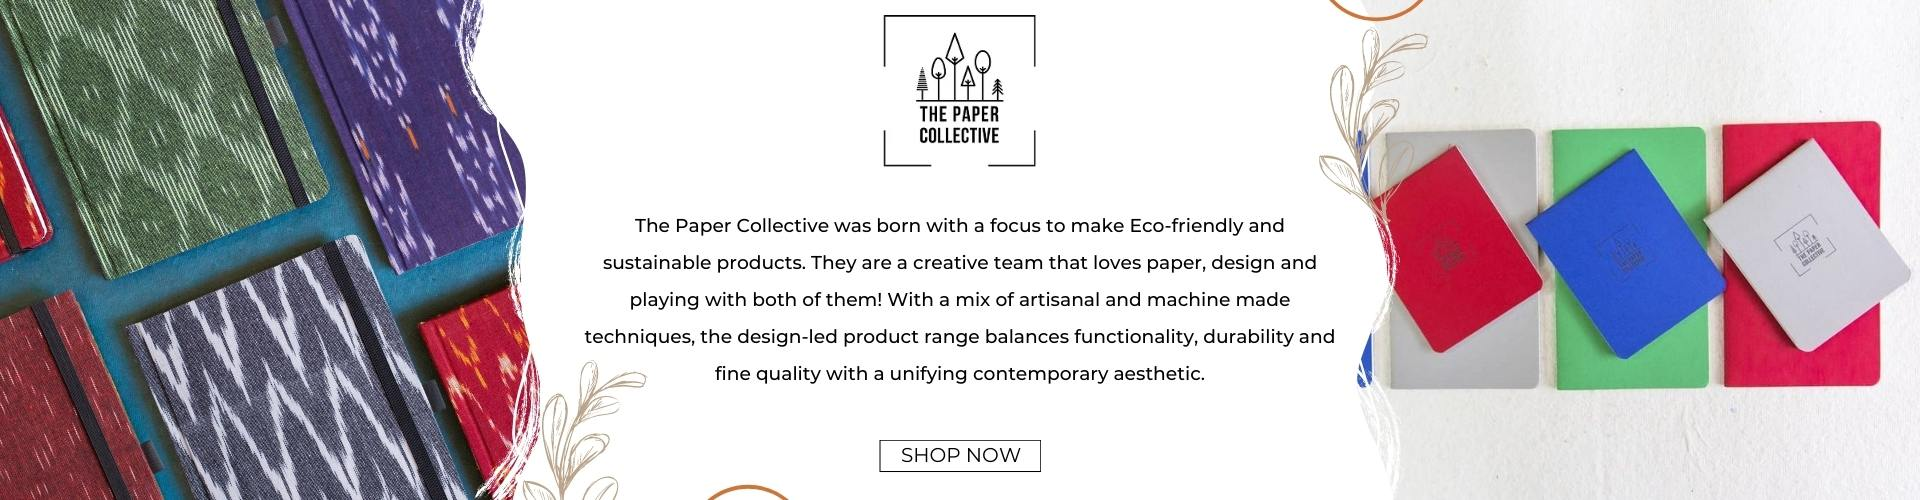 The Paper Collective